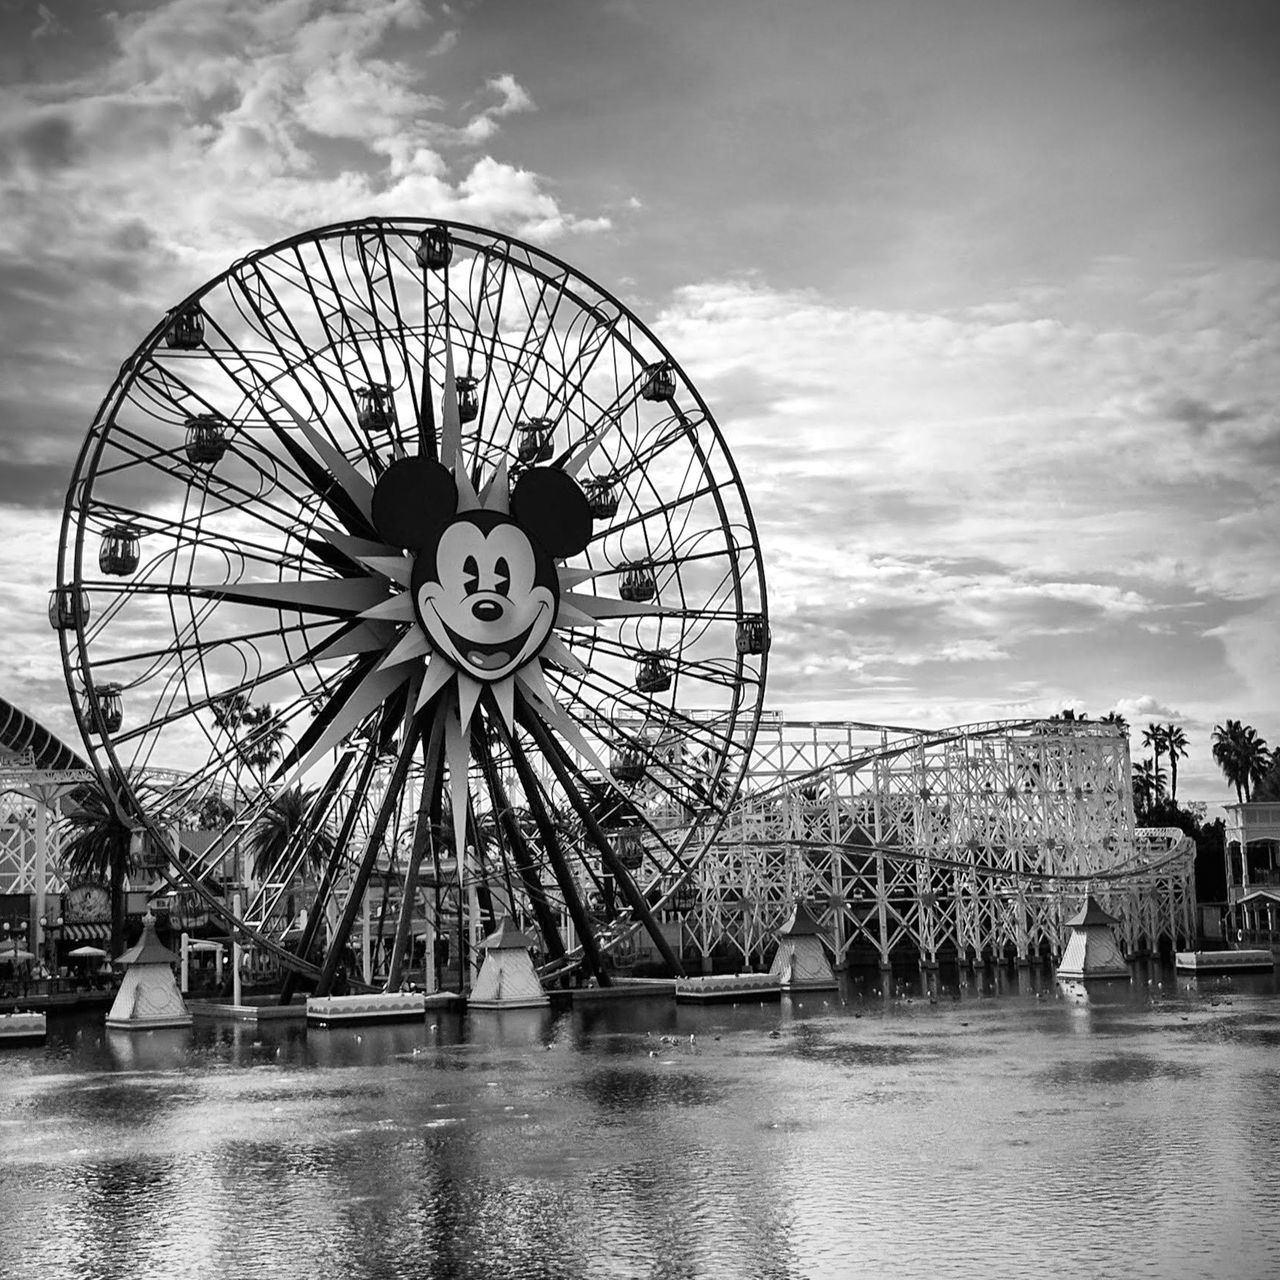 Ferris Wheel Sky Water Amusement Park Disneyland Mickey Mouse California Adventure Blackandwhite Black & White Bnw Monochrome Fortheloveofblackandwhite Black&white Pier Shotbypixel Android AndroidPhotography LiveanddirectfromLosAngeles